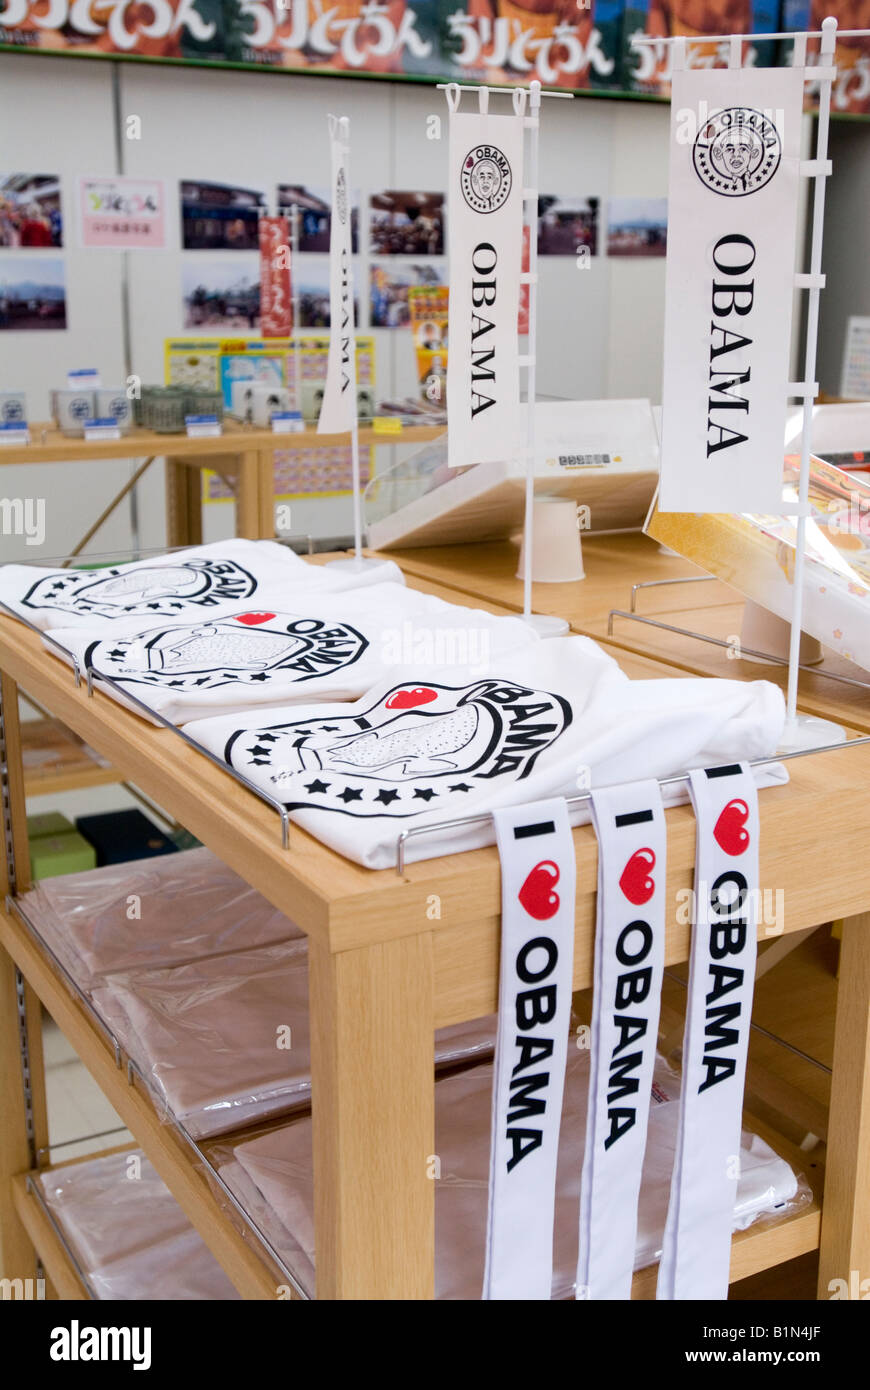 Souvenir shop in Obama, Japan selling Barack Obama goods - Stock Image